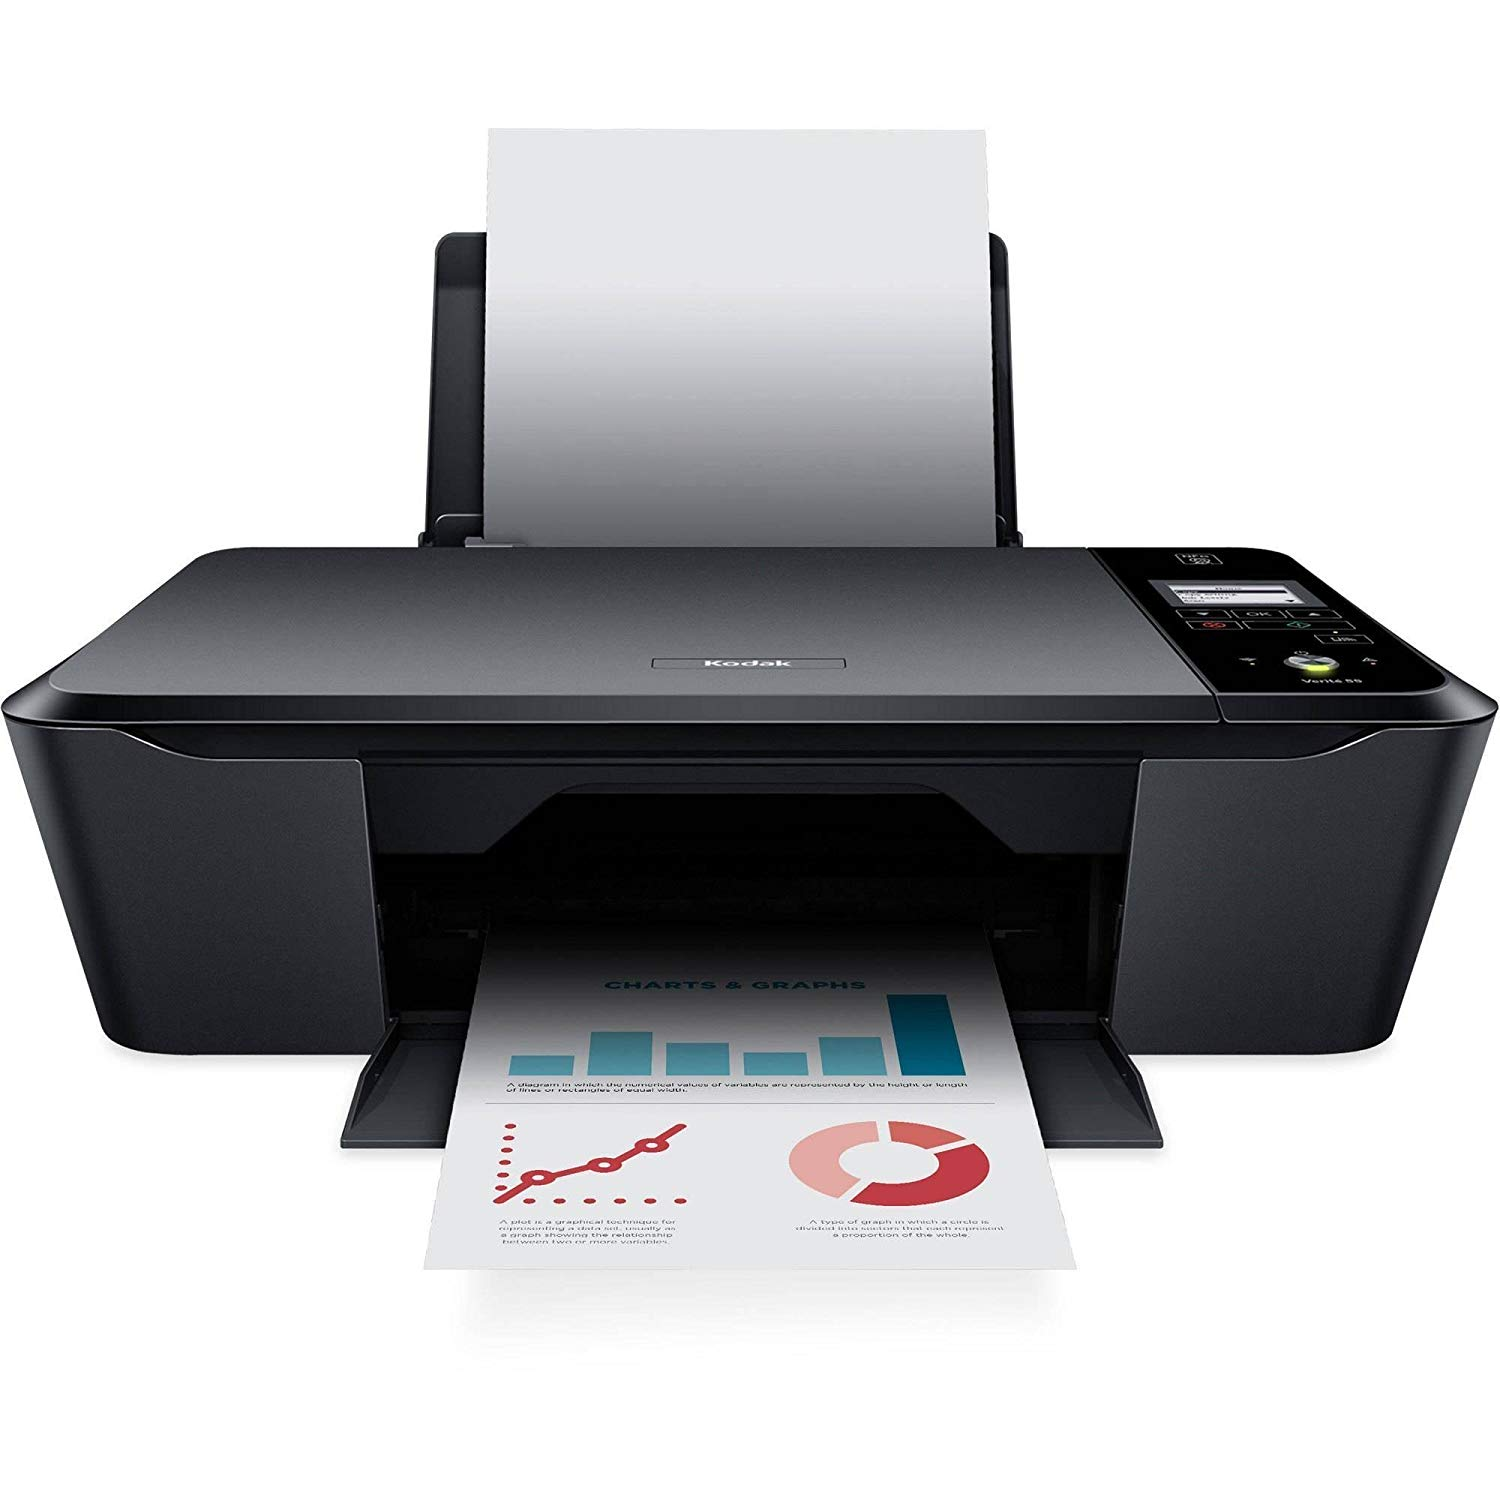 kodak 6150 printer driver for mac